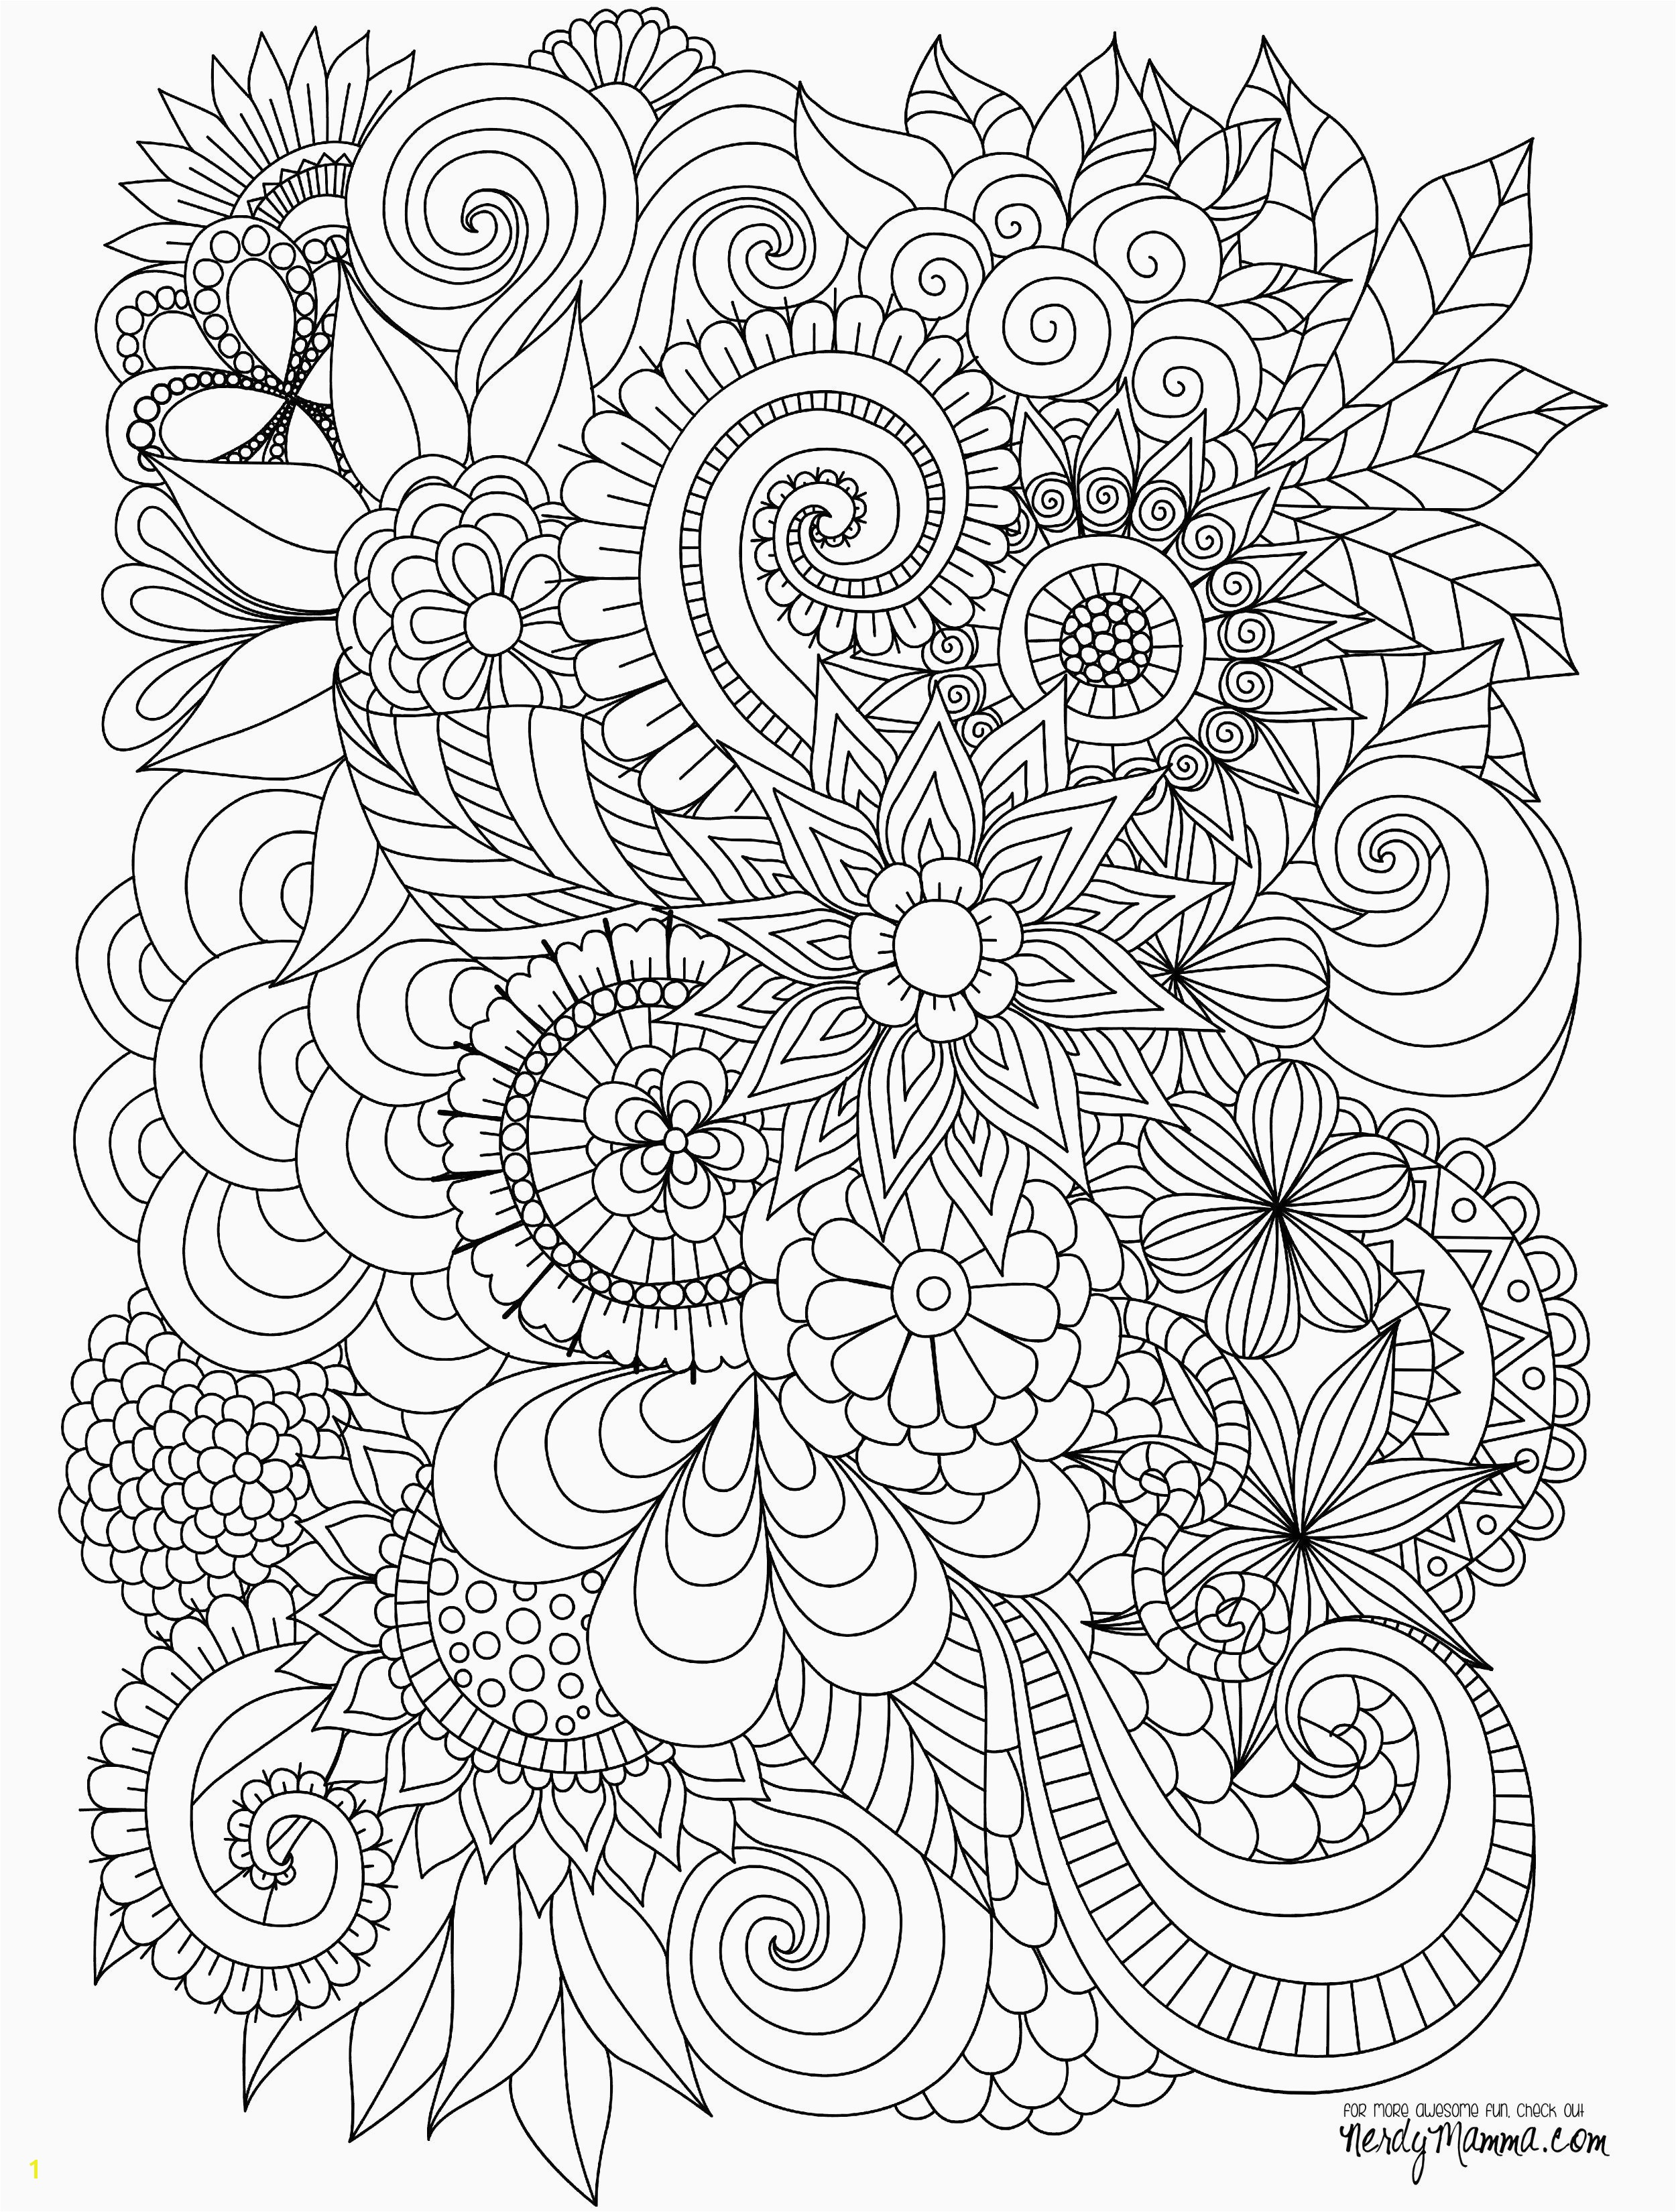 Celestial Seasonings Coloring Pages Fresh Fall Coloring Pages Elegant Free Coloring Autumn Day – Voterapp